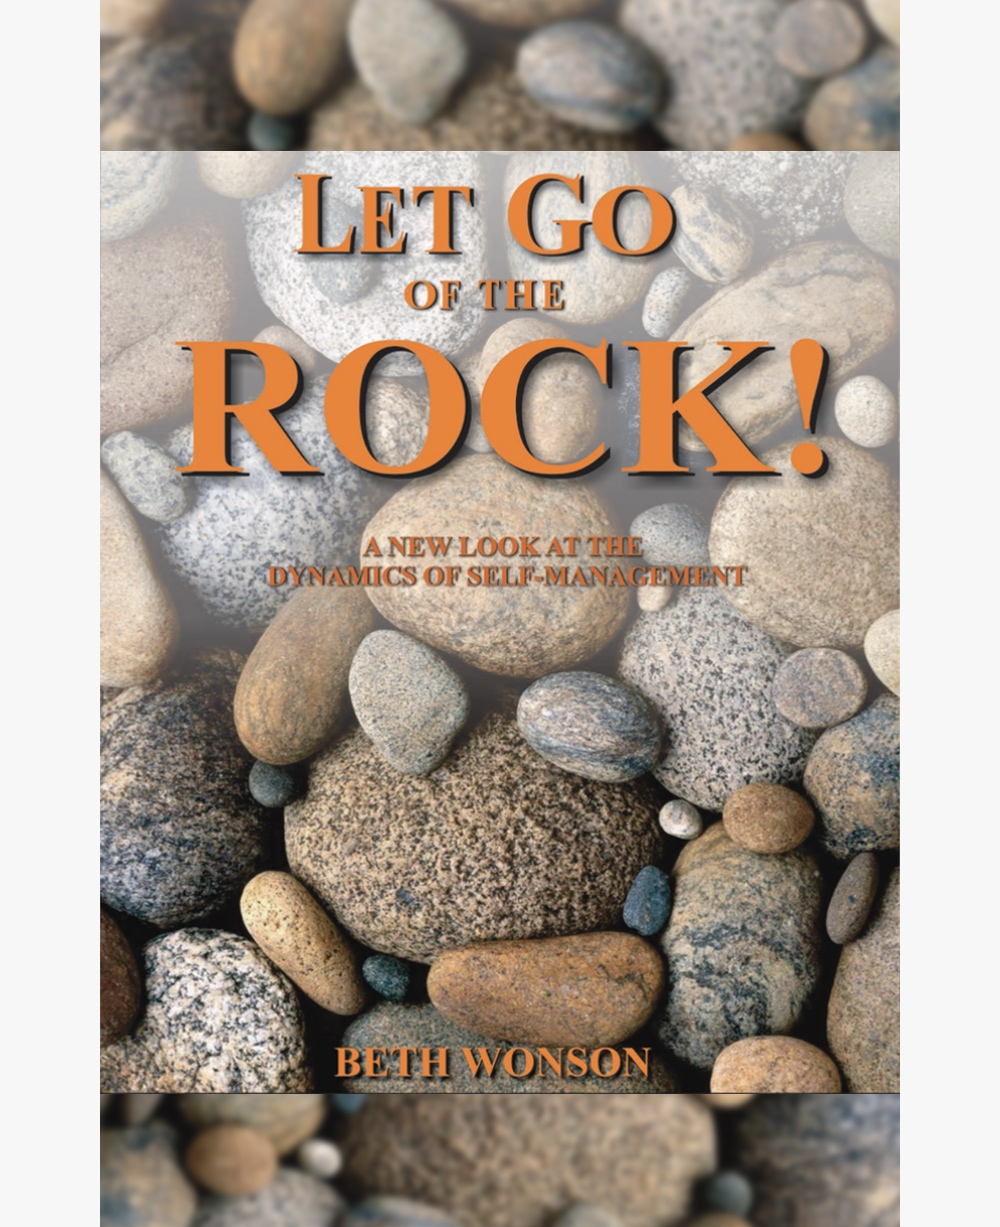 - Let Go Of The Rock! is a fun read that will bring you a whole new perspective on the everyday ROCKS that hold you back, decrease your joy, and inhibit peak performance. [Buy Now]